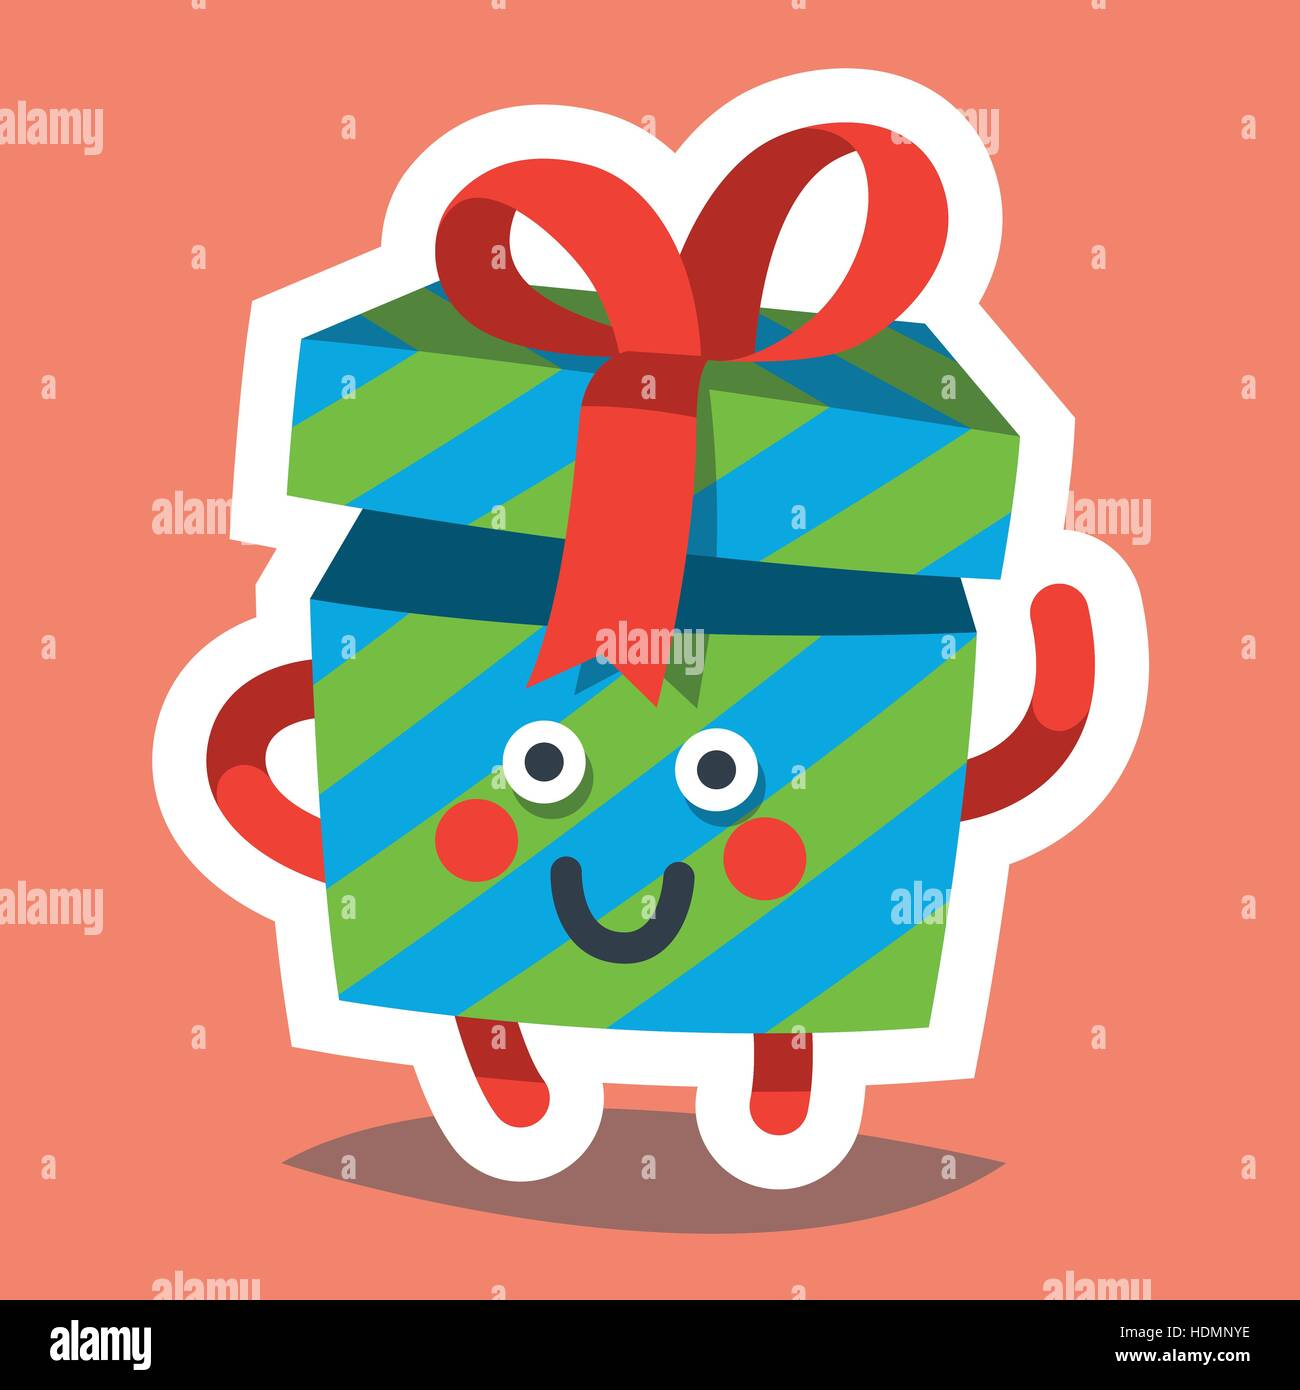 vector illustration emoticon icon on theme of winter holiday emoji emoticon happy new year icon emotion merry christmas funny gift xmas sticker ico